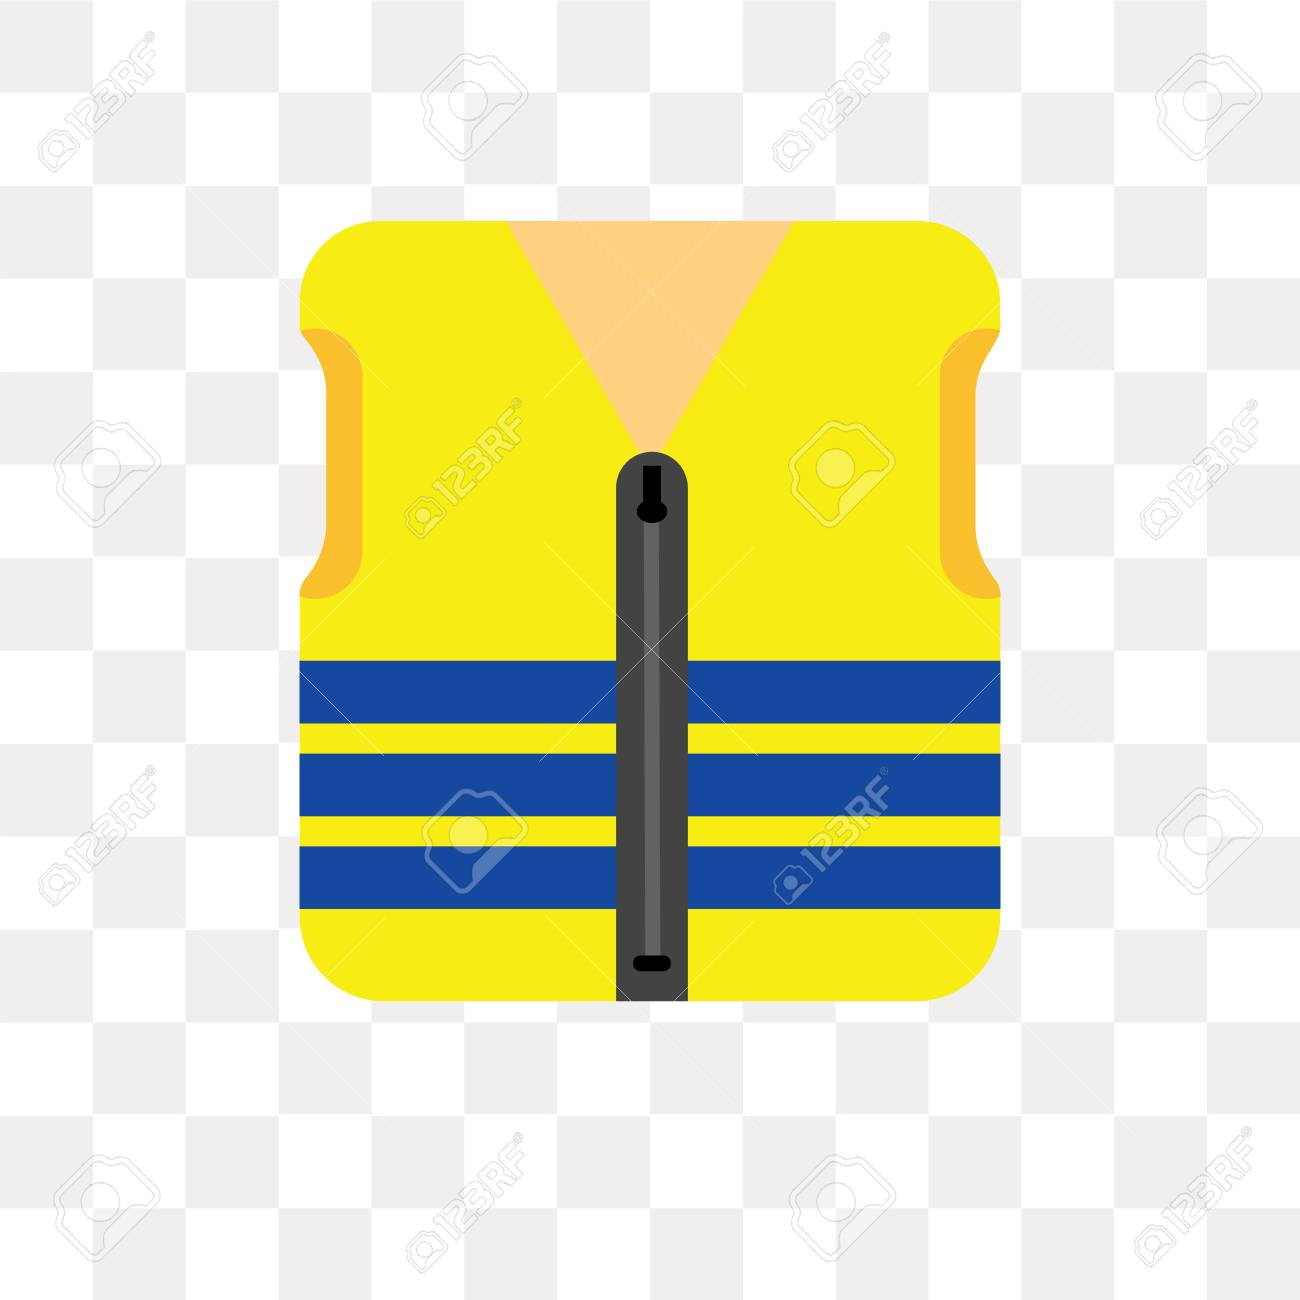 Life Vest Vector Icon Isolated On Transparent Background Life Royalty Free Cliparts Vectors And Stock Illustration Image 108182209